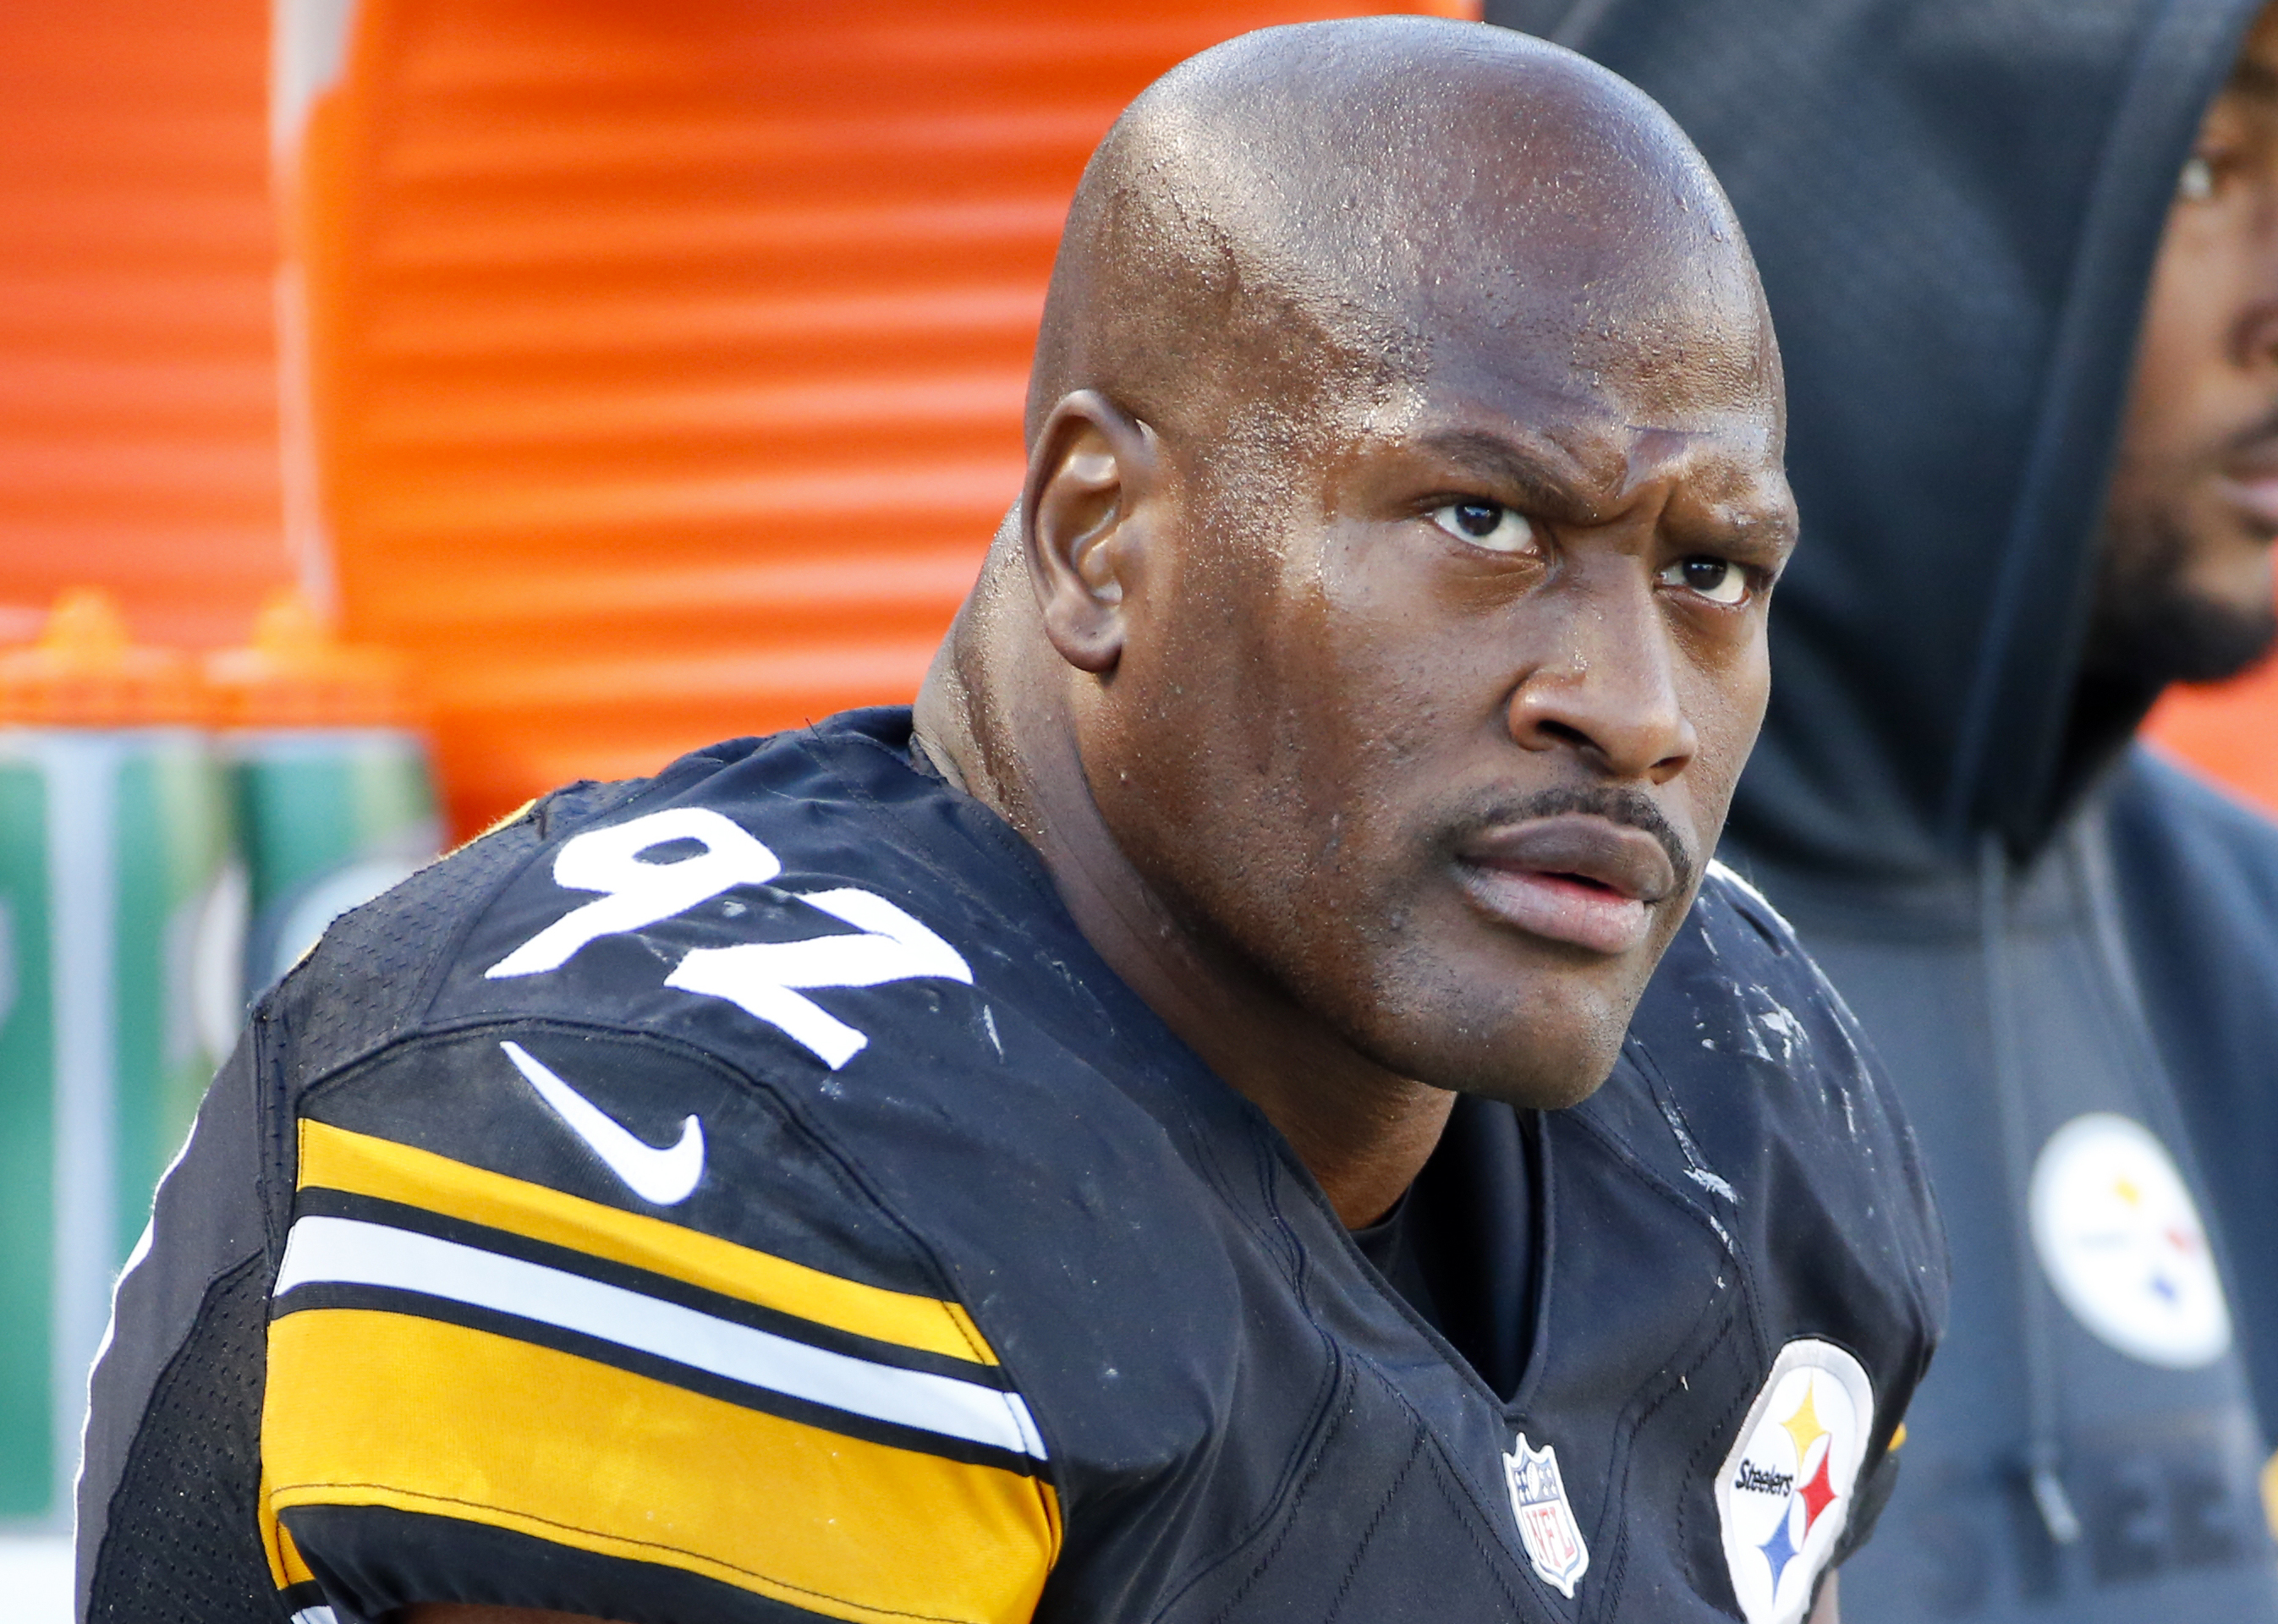 FILE - In this Nov. 8, 2015, file photo, Pittsburgh Steelers outside linebacker James Harrison (92) sits on the sidelines during an NFL football game against the Oakland Raiders in Pittsburgh. Harrison said in an affidavit sent to the NFL that he never me